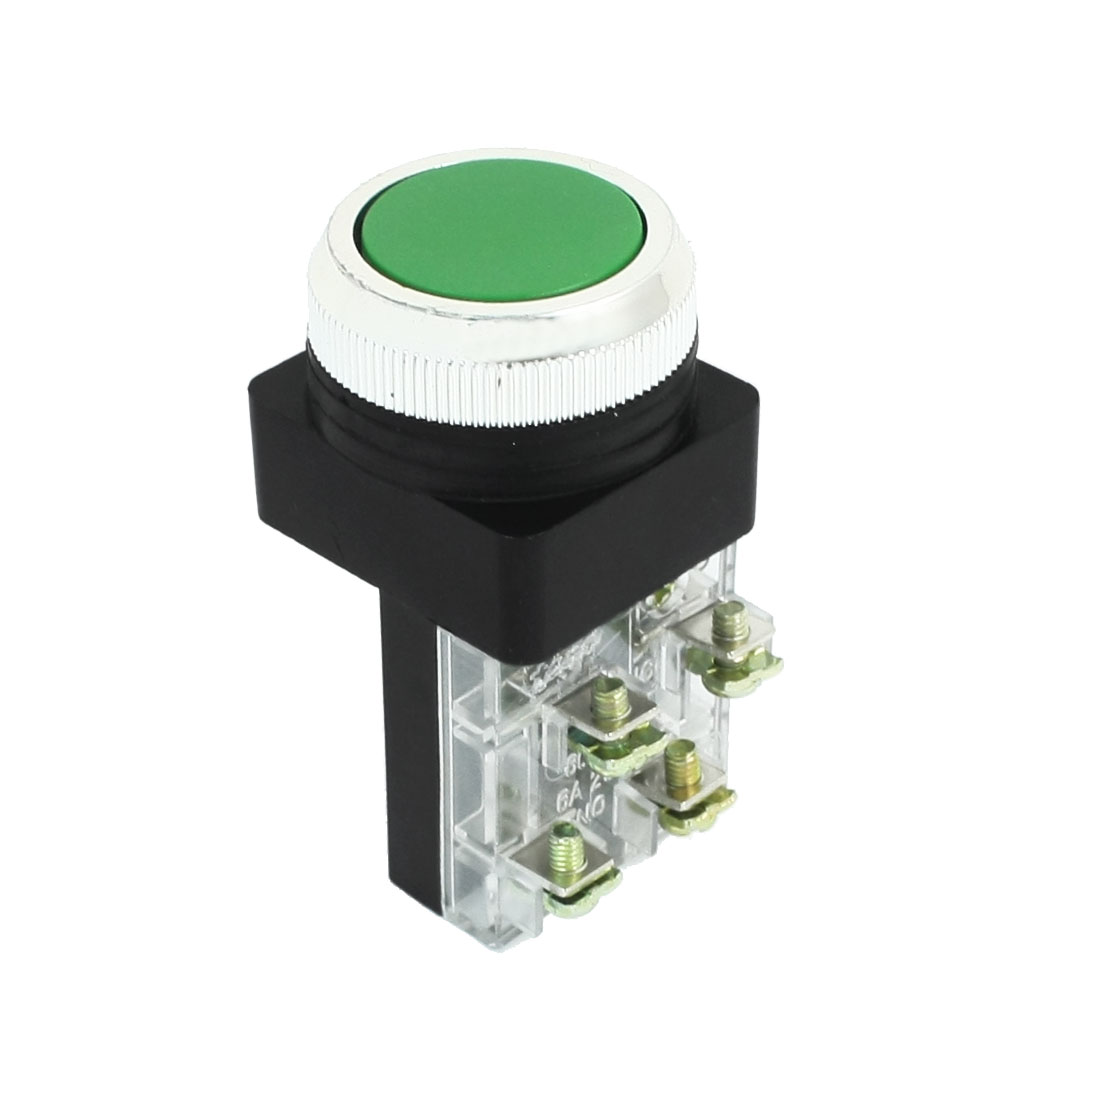 DPST 4 Screw Terminals Green Flat Button Momentary Pushbutton Switch AC 250V 6A